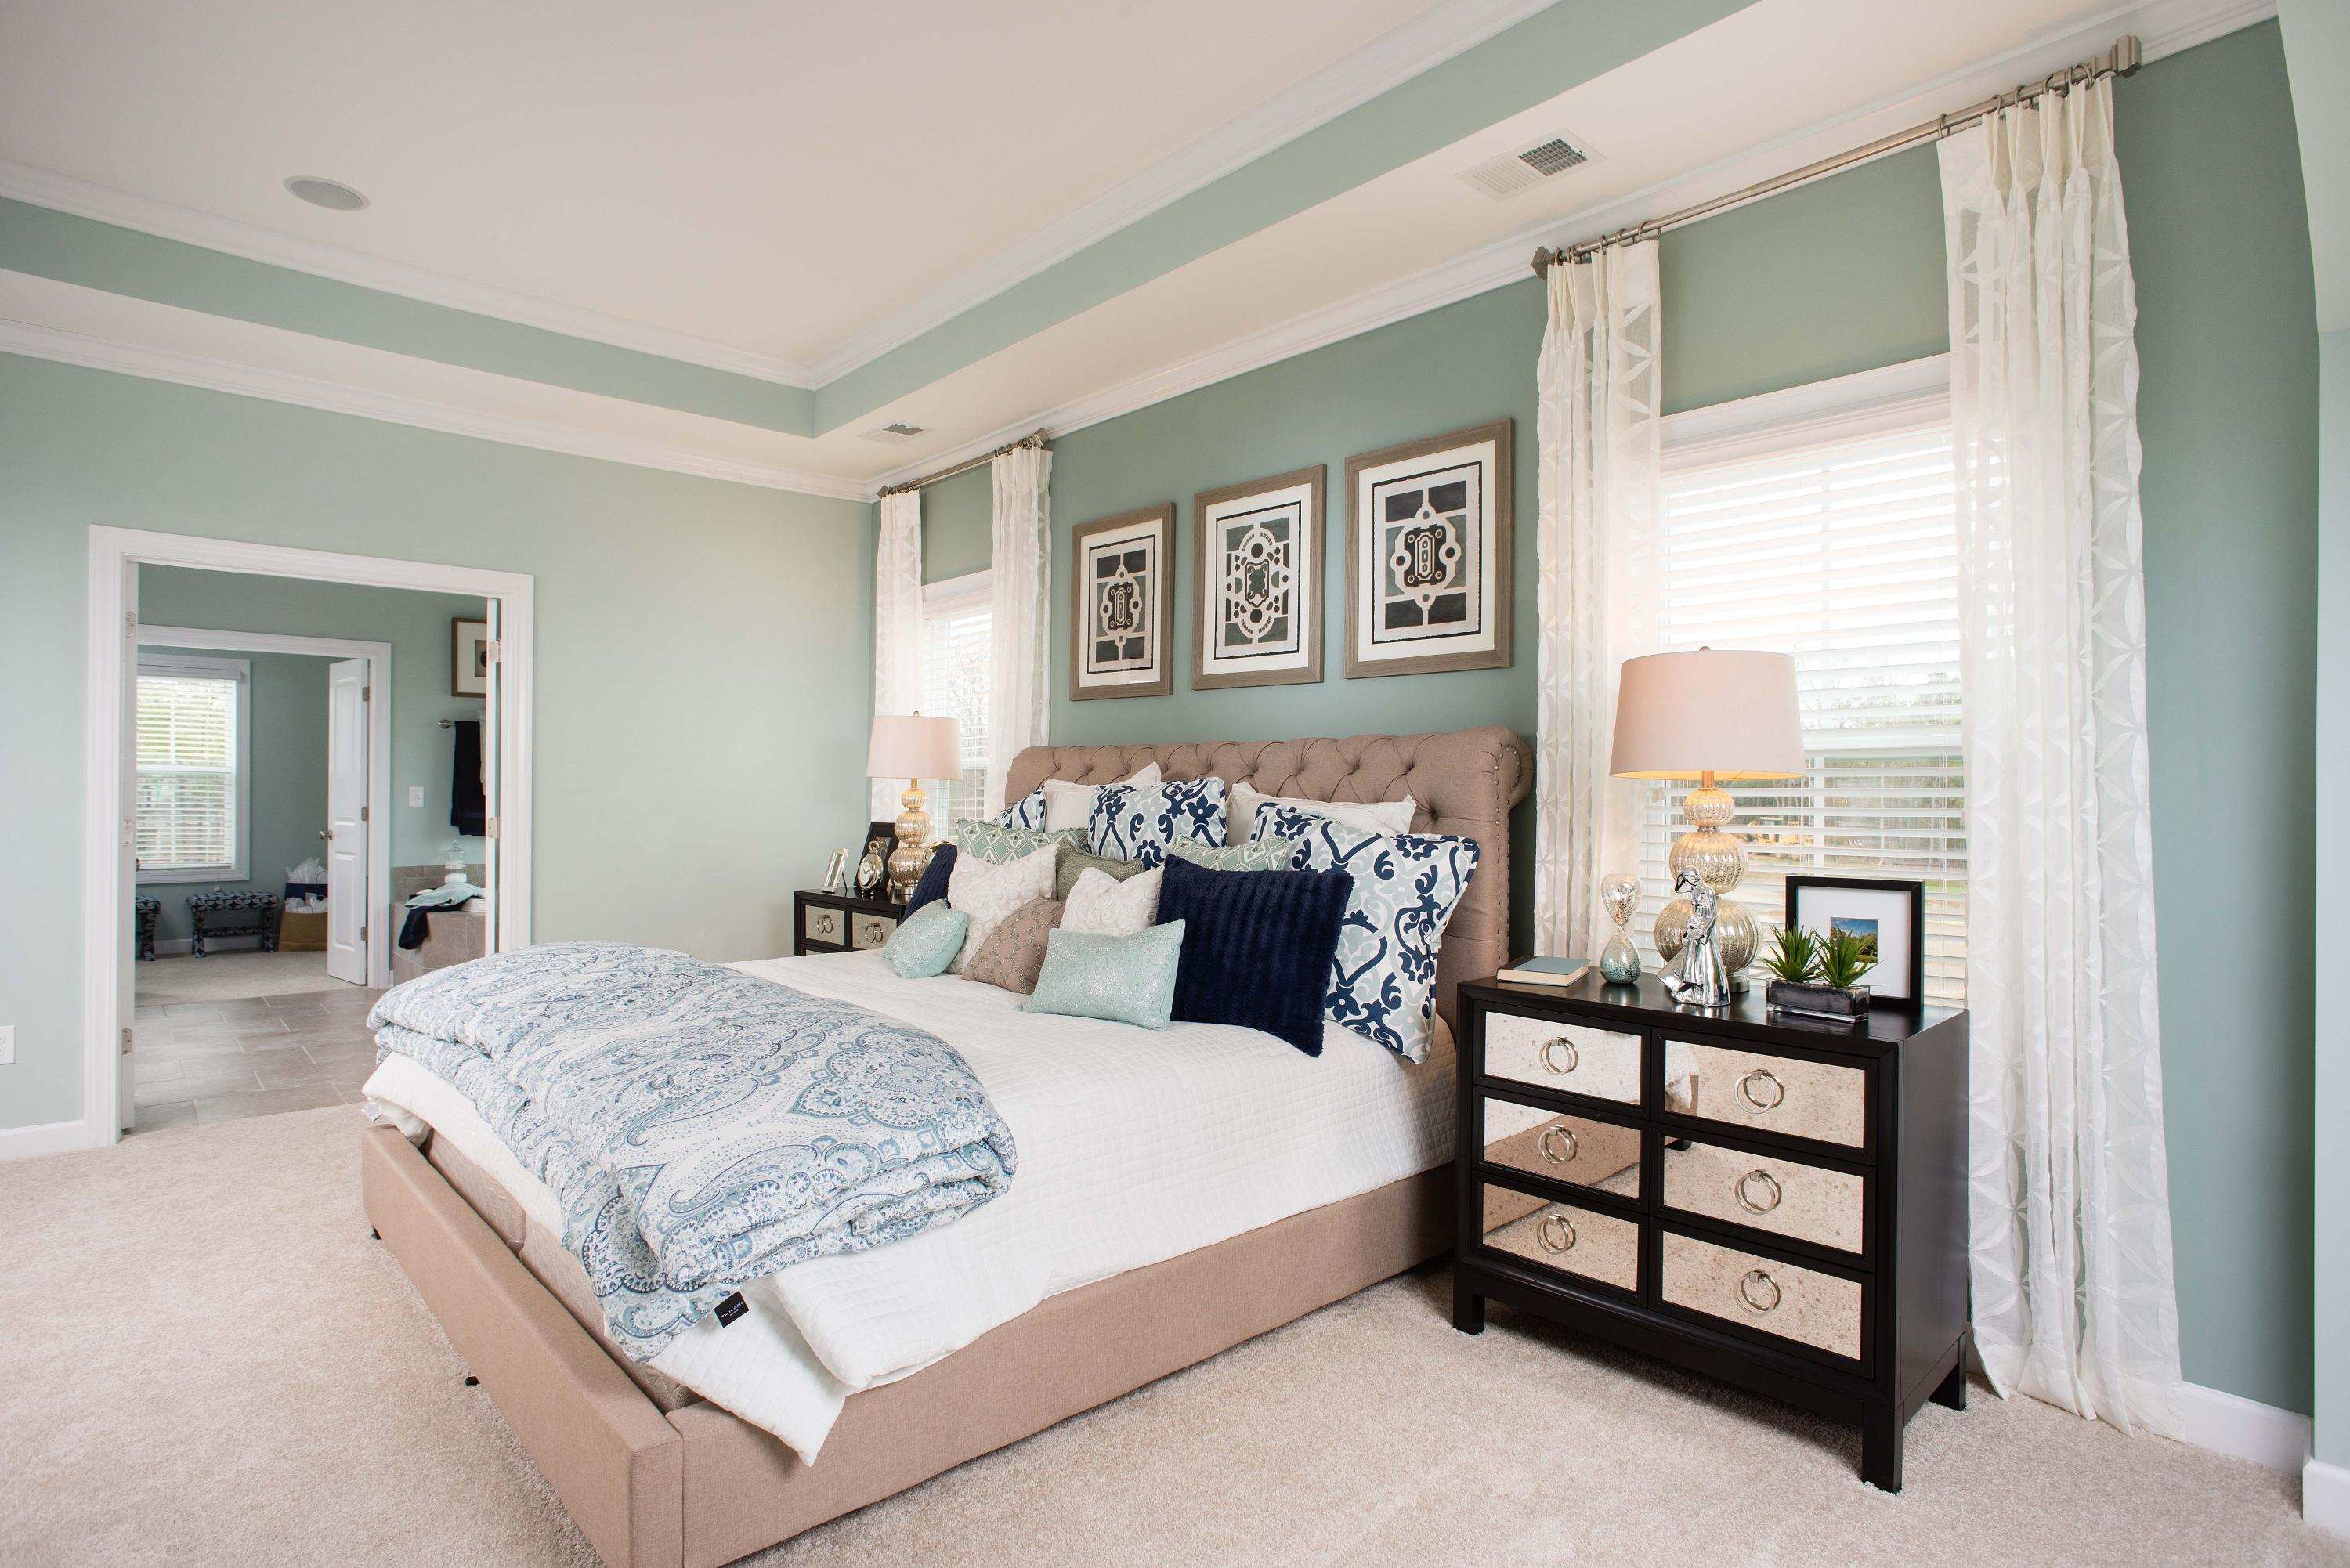 The Village at Stiles Point Homes For Sale - 837 Foliage, Charleston, SC - 2